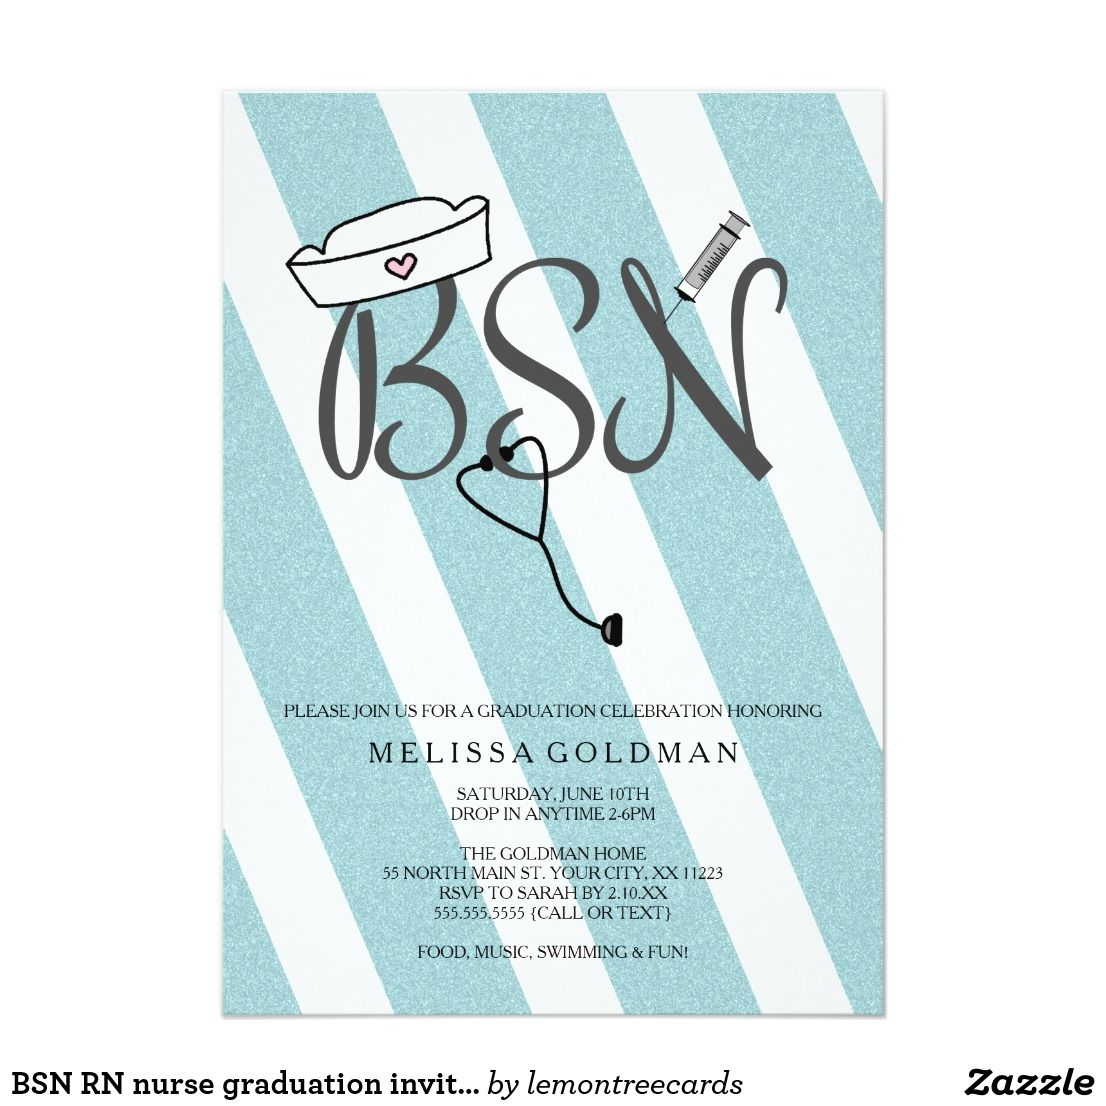 BSN RN Nurse Graduation Invites Teal Blue Glitter I Have This Design Available In Other Designations